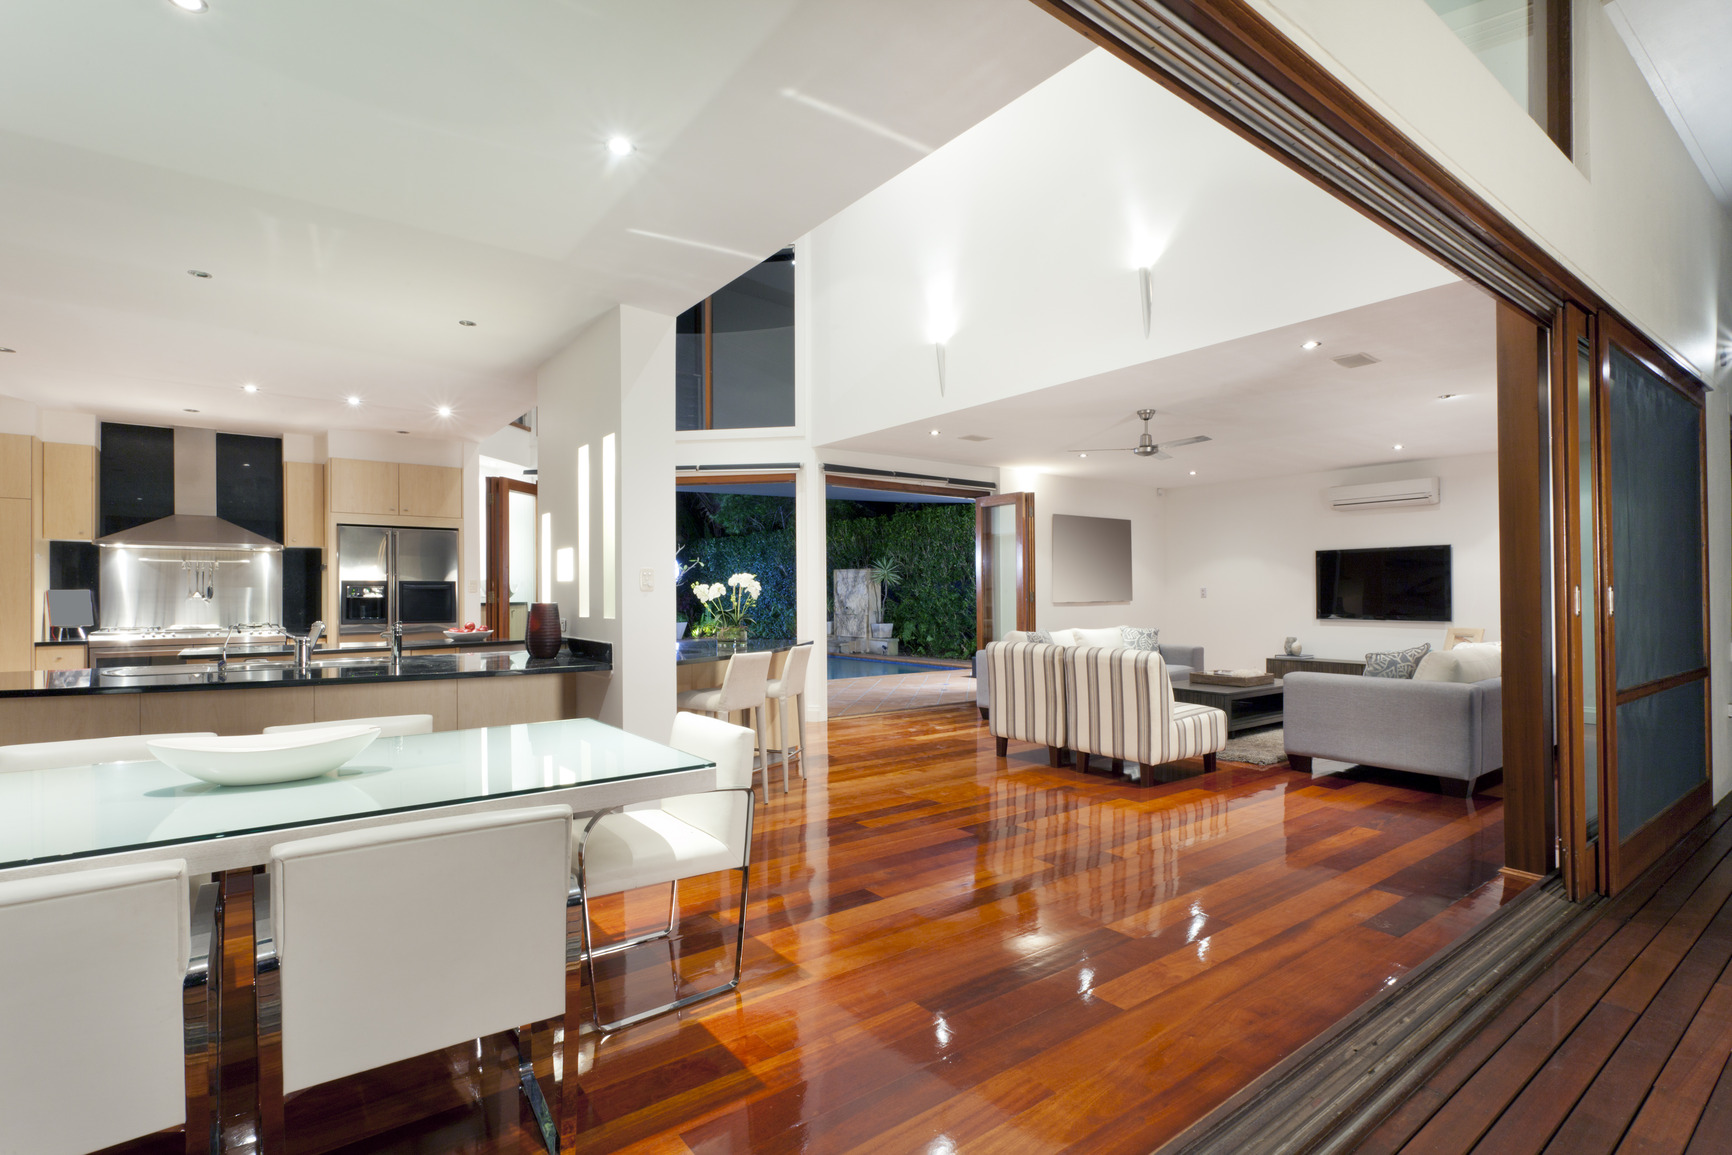 Luxurious home interior with large sliding doors